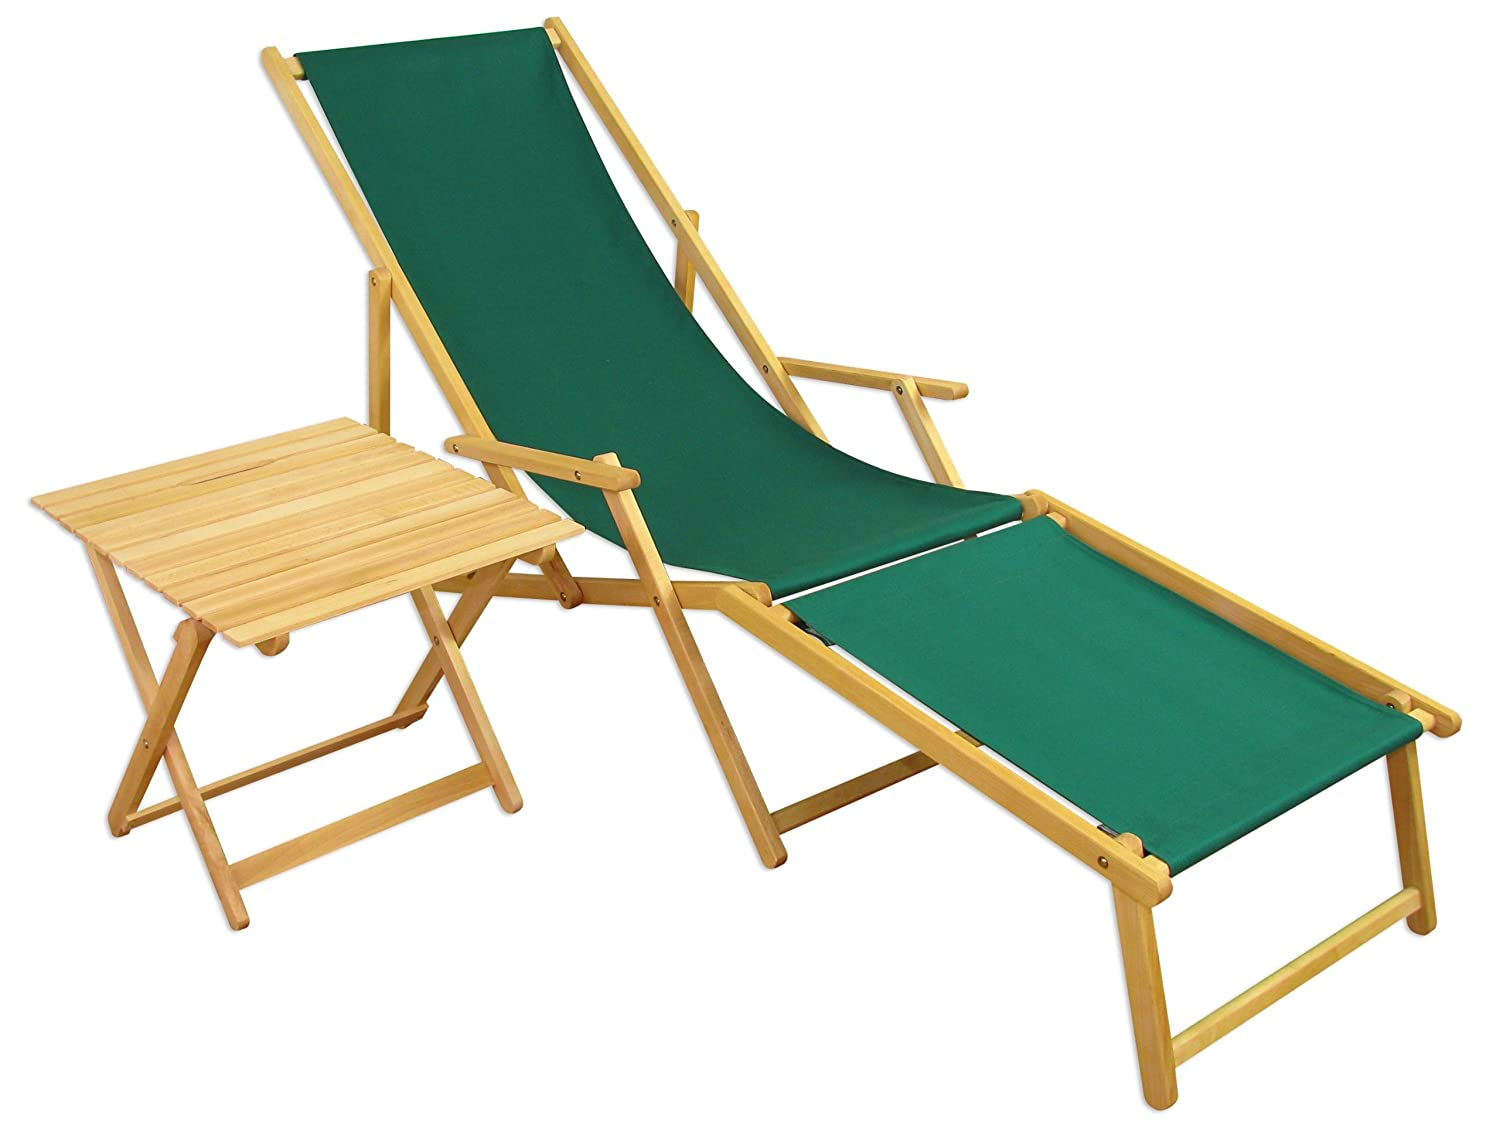 sonnenliege gartenliege deckchair saunaliege inkl. Black Bedroom Furniture Sets. Home Design Ideas